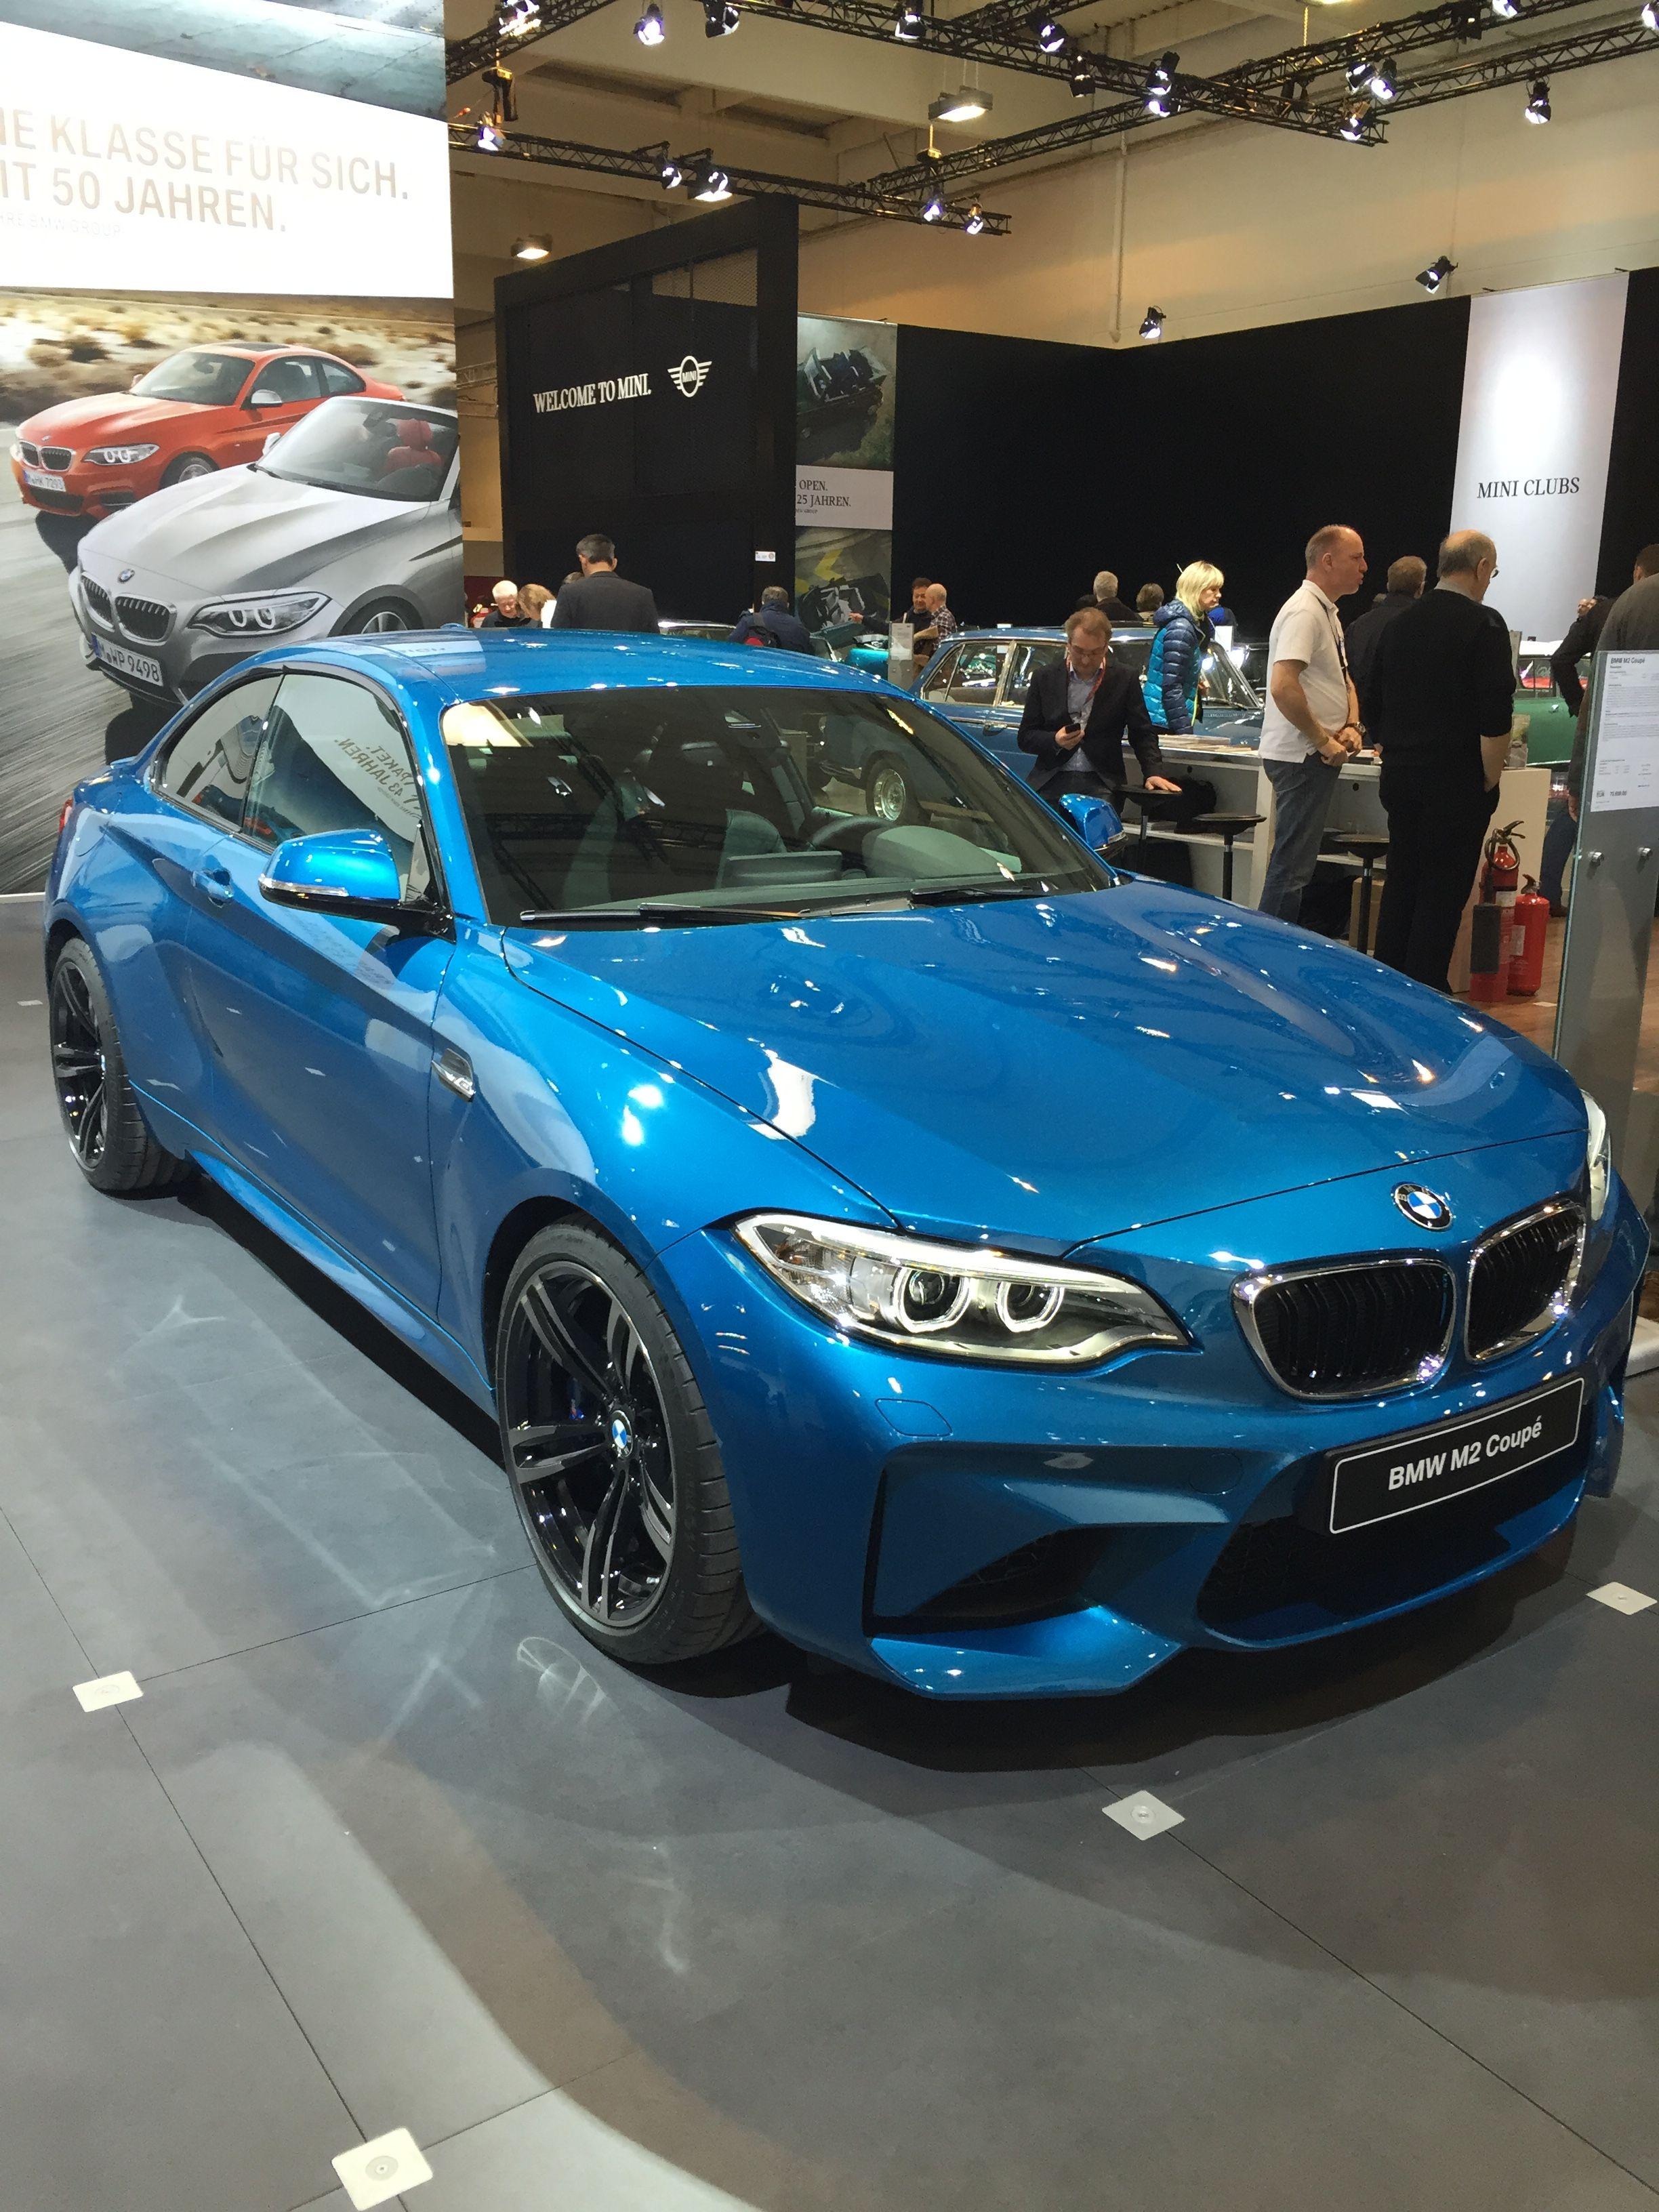 Bmw at essen techno classica car show in germany 2016